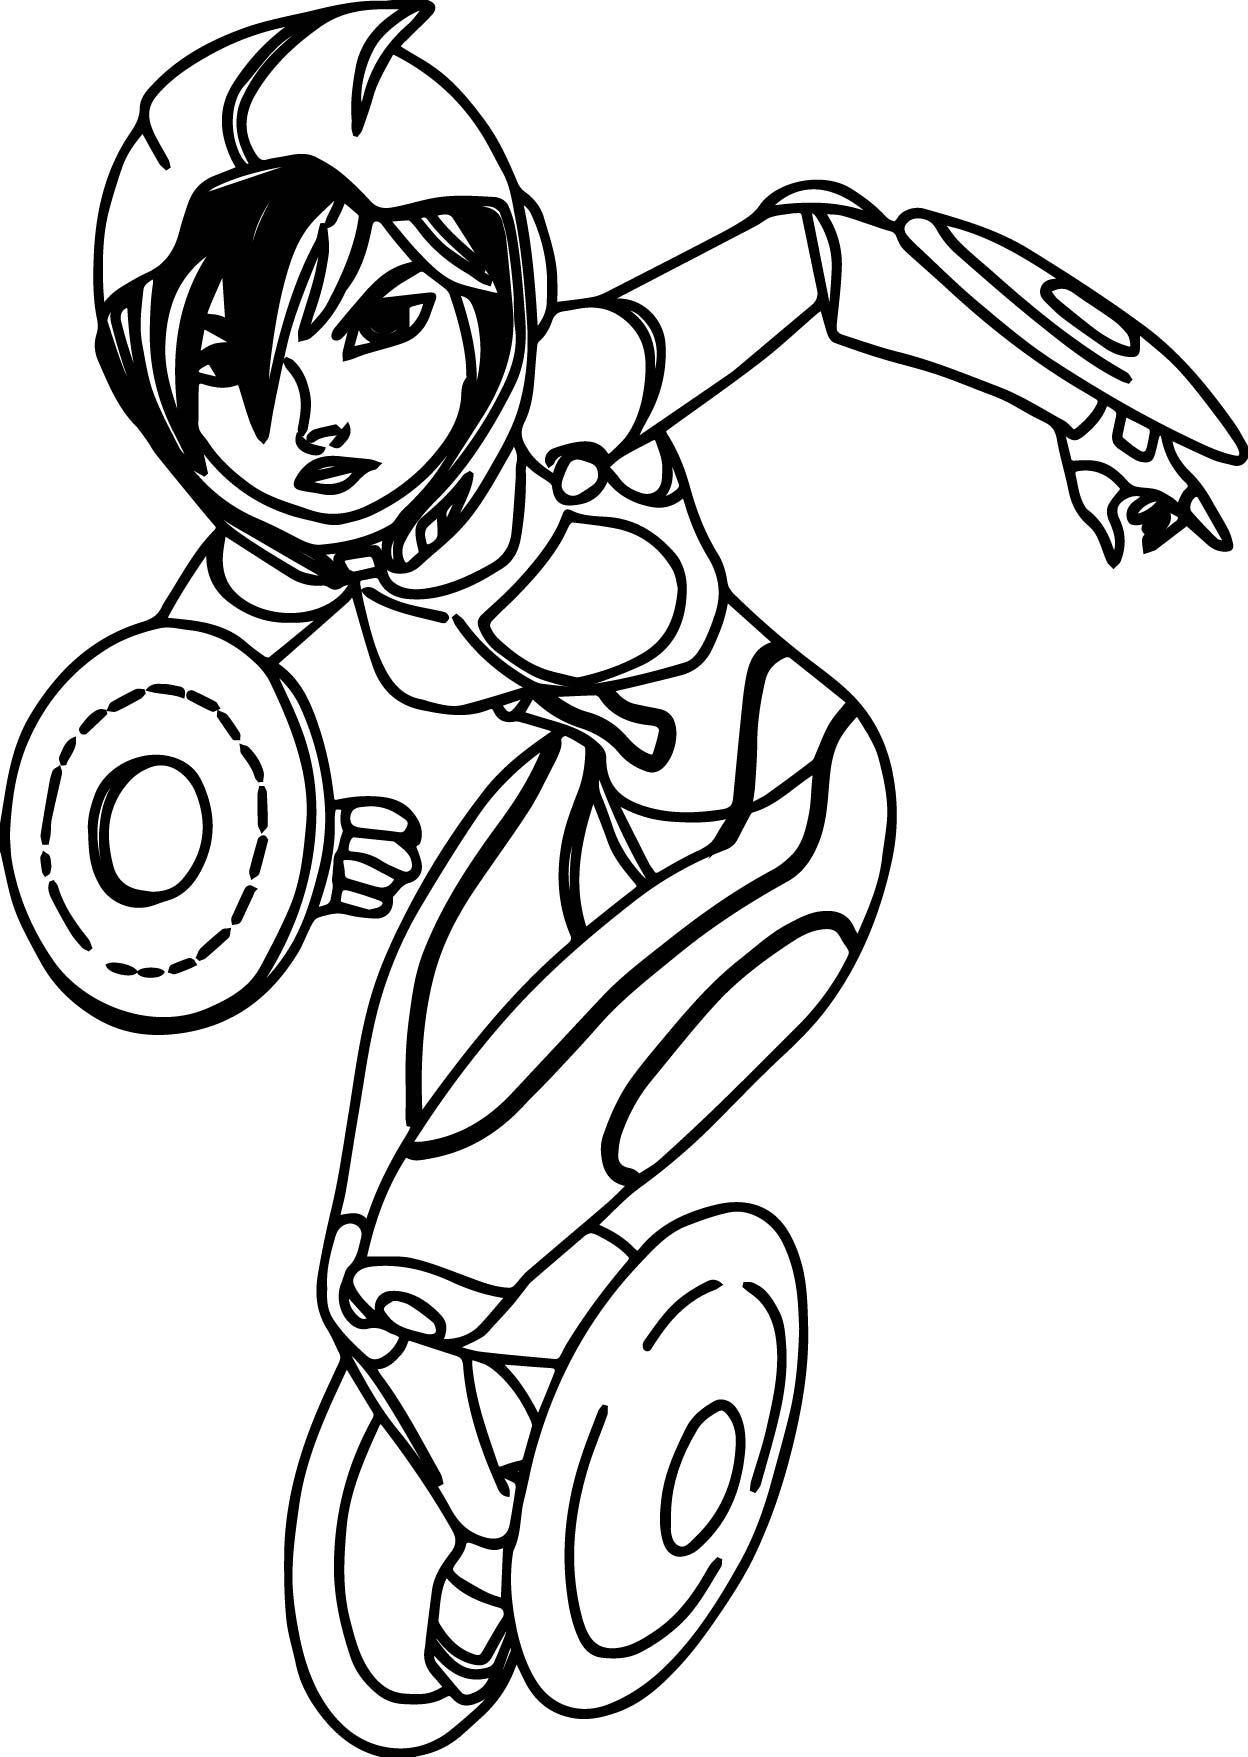 Big Hero 6 Characters Gogo Tomago Coloring Page Big Hero 6